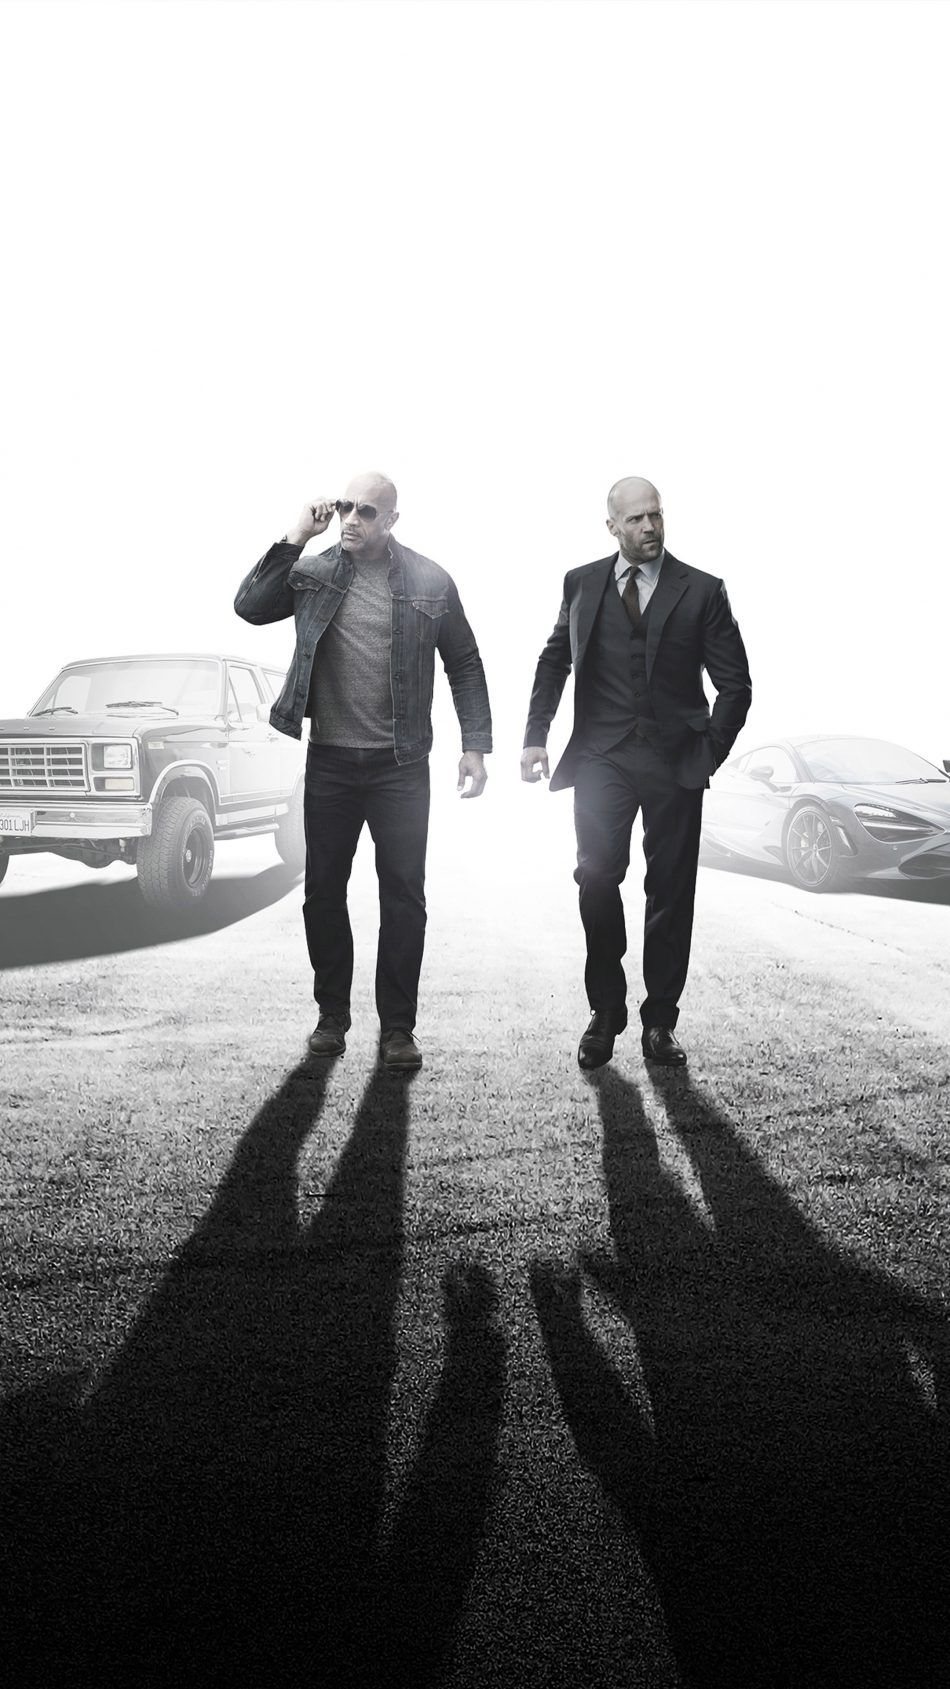 Dwayne Johnson & Jason In Fast & Furious Presents Hobbs